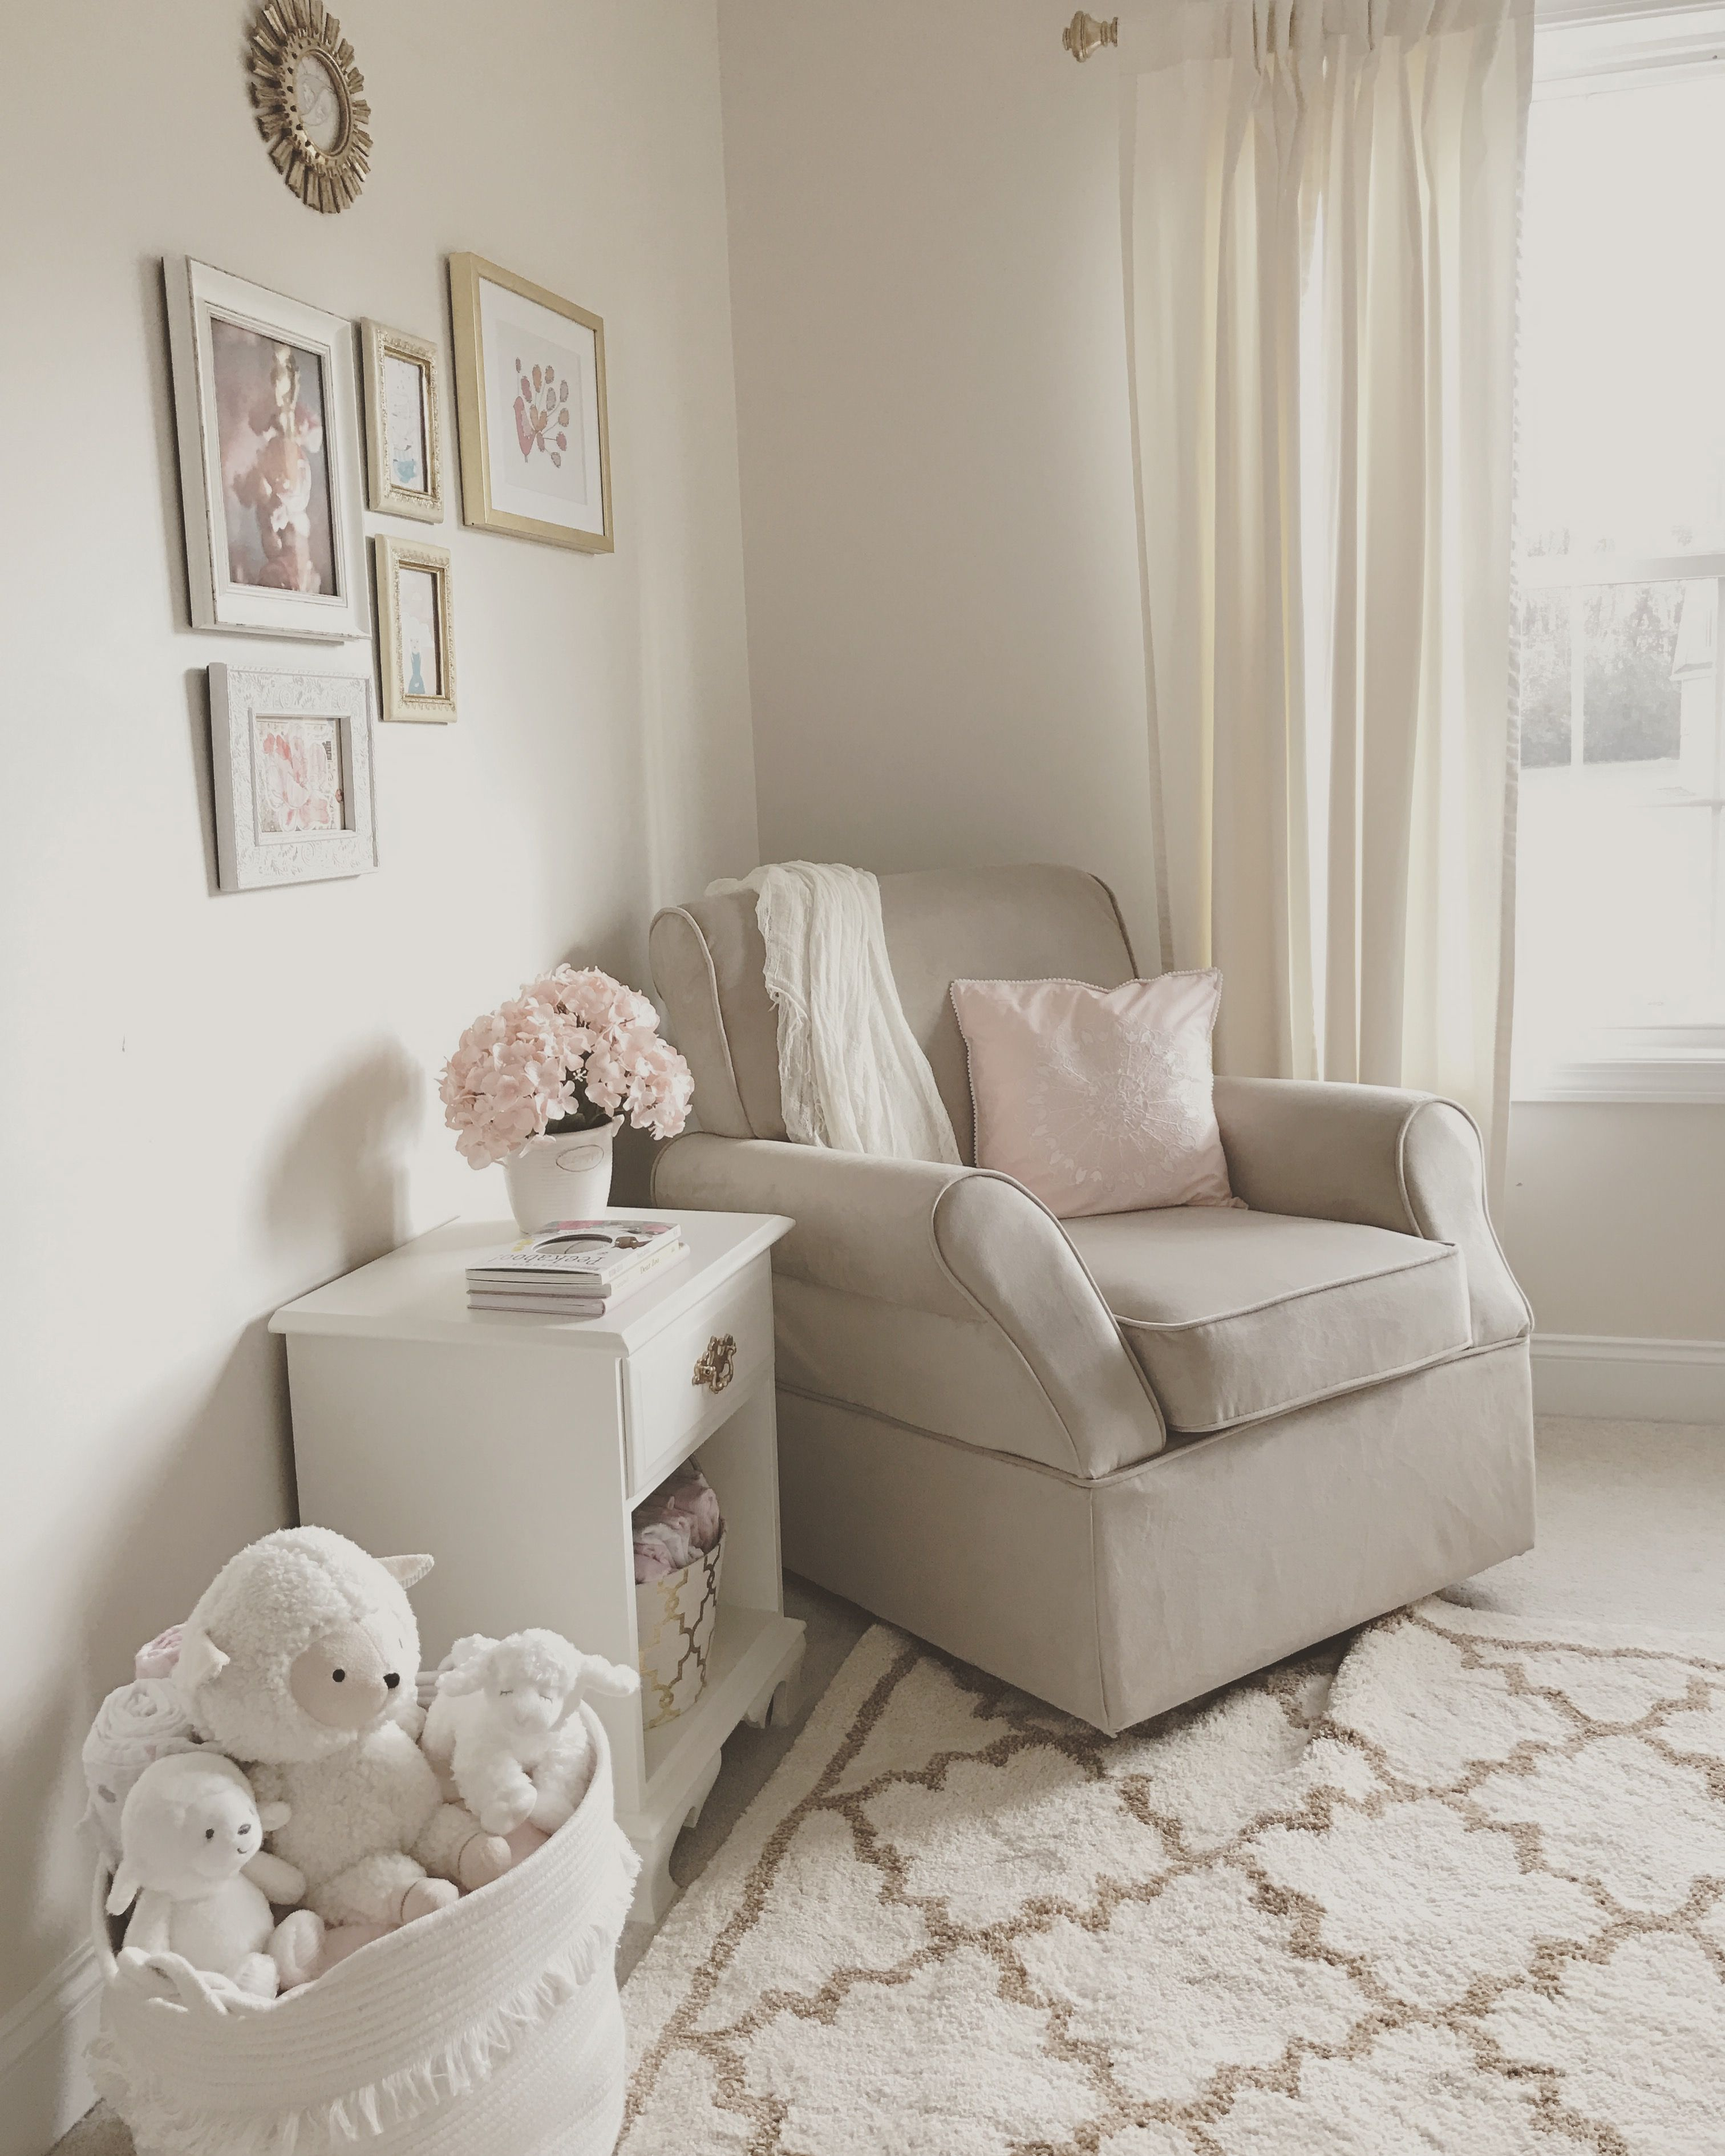 Pink Nursery Rocking Chair Covers For Living Room Chairs Neutral White Gold And Blush Beige Rocker Glider Baby Girl Flowers Hydrangeas Framed Art Wall Gallery